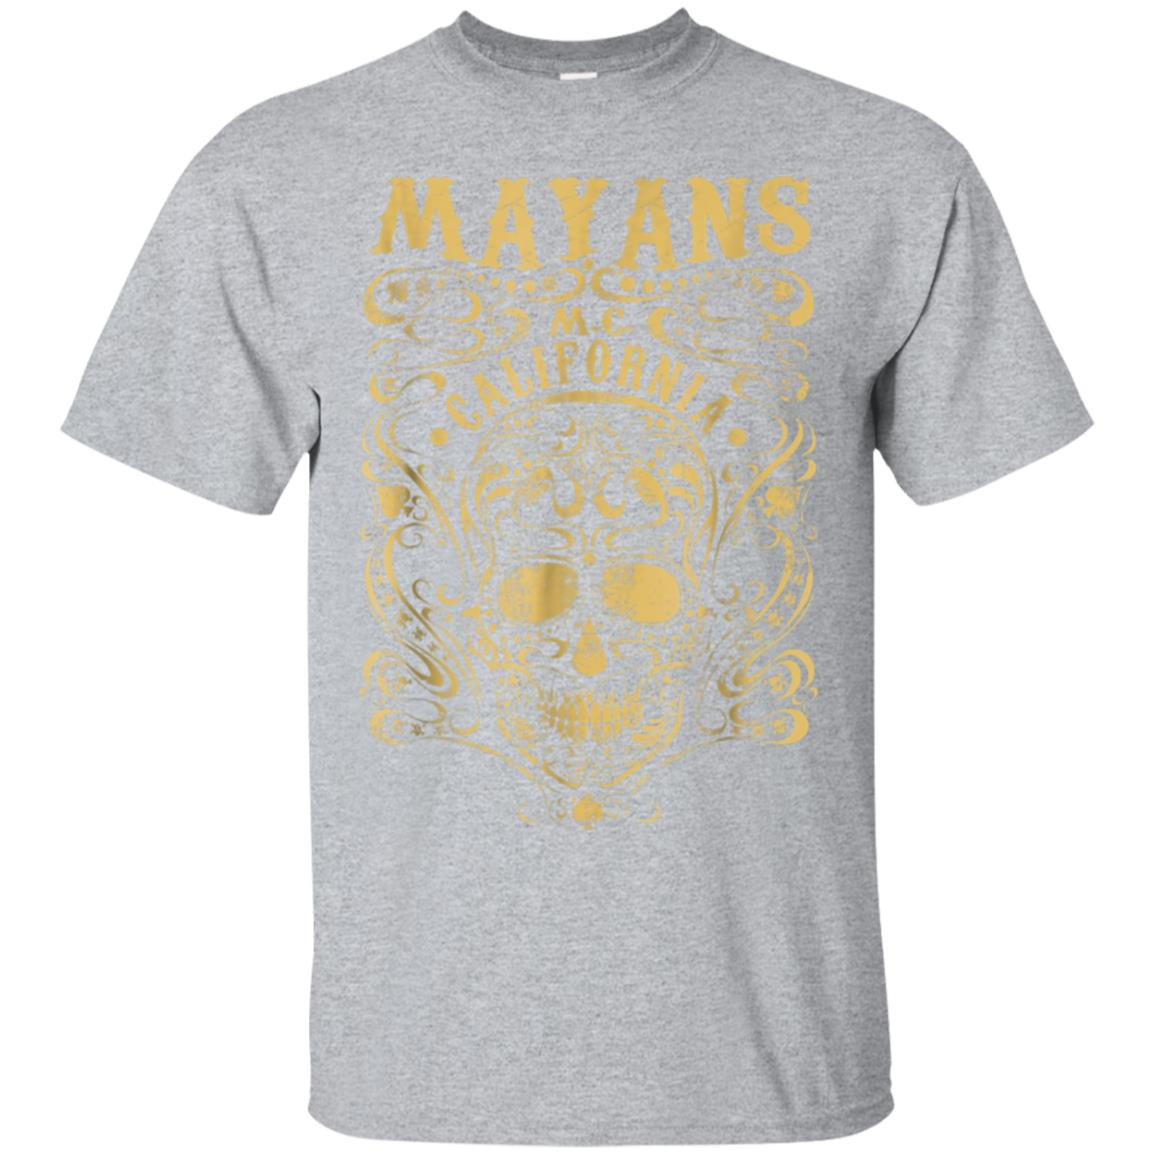 Mayan MC Apparel Vintage T Shirt Limited Gold Skull Edition 99promocode